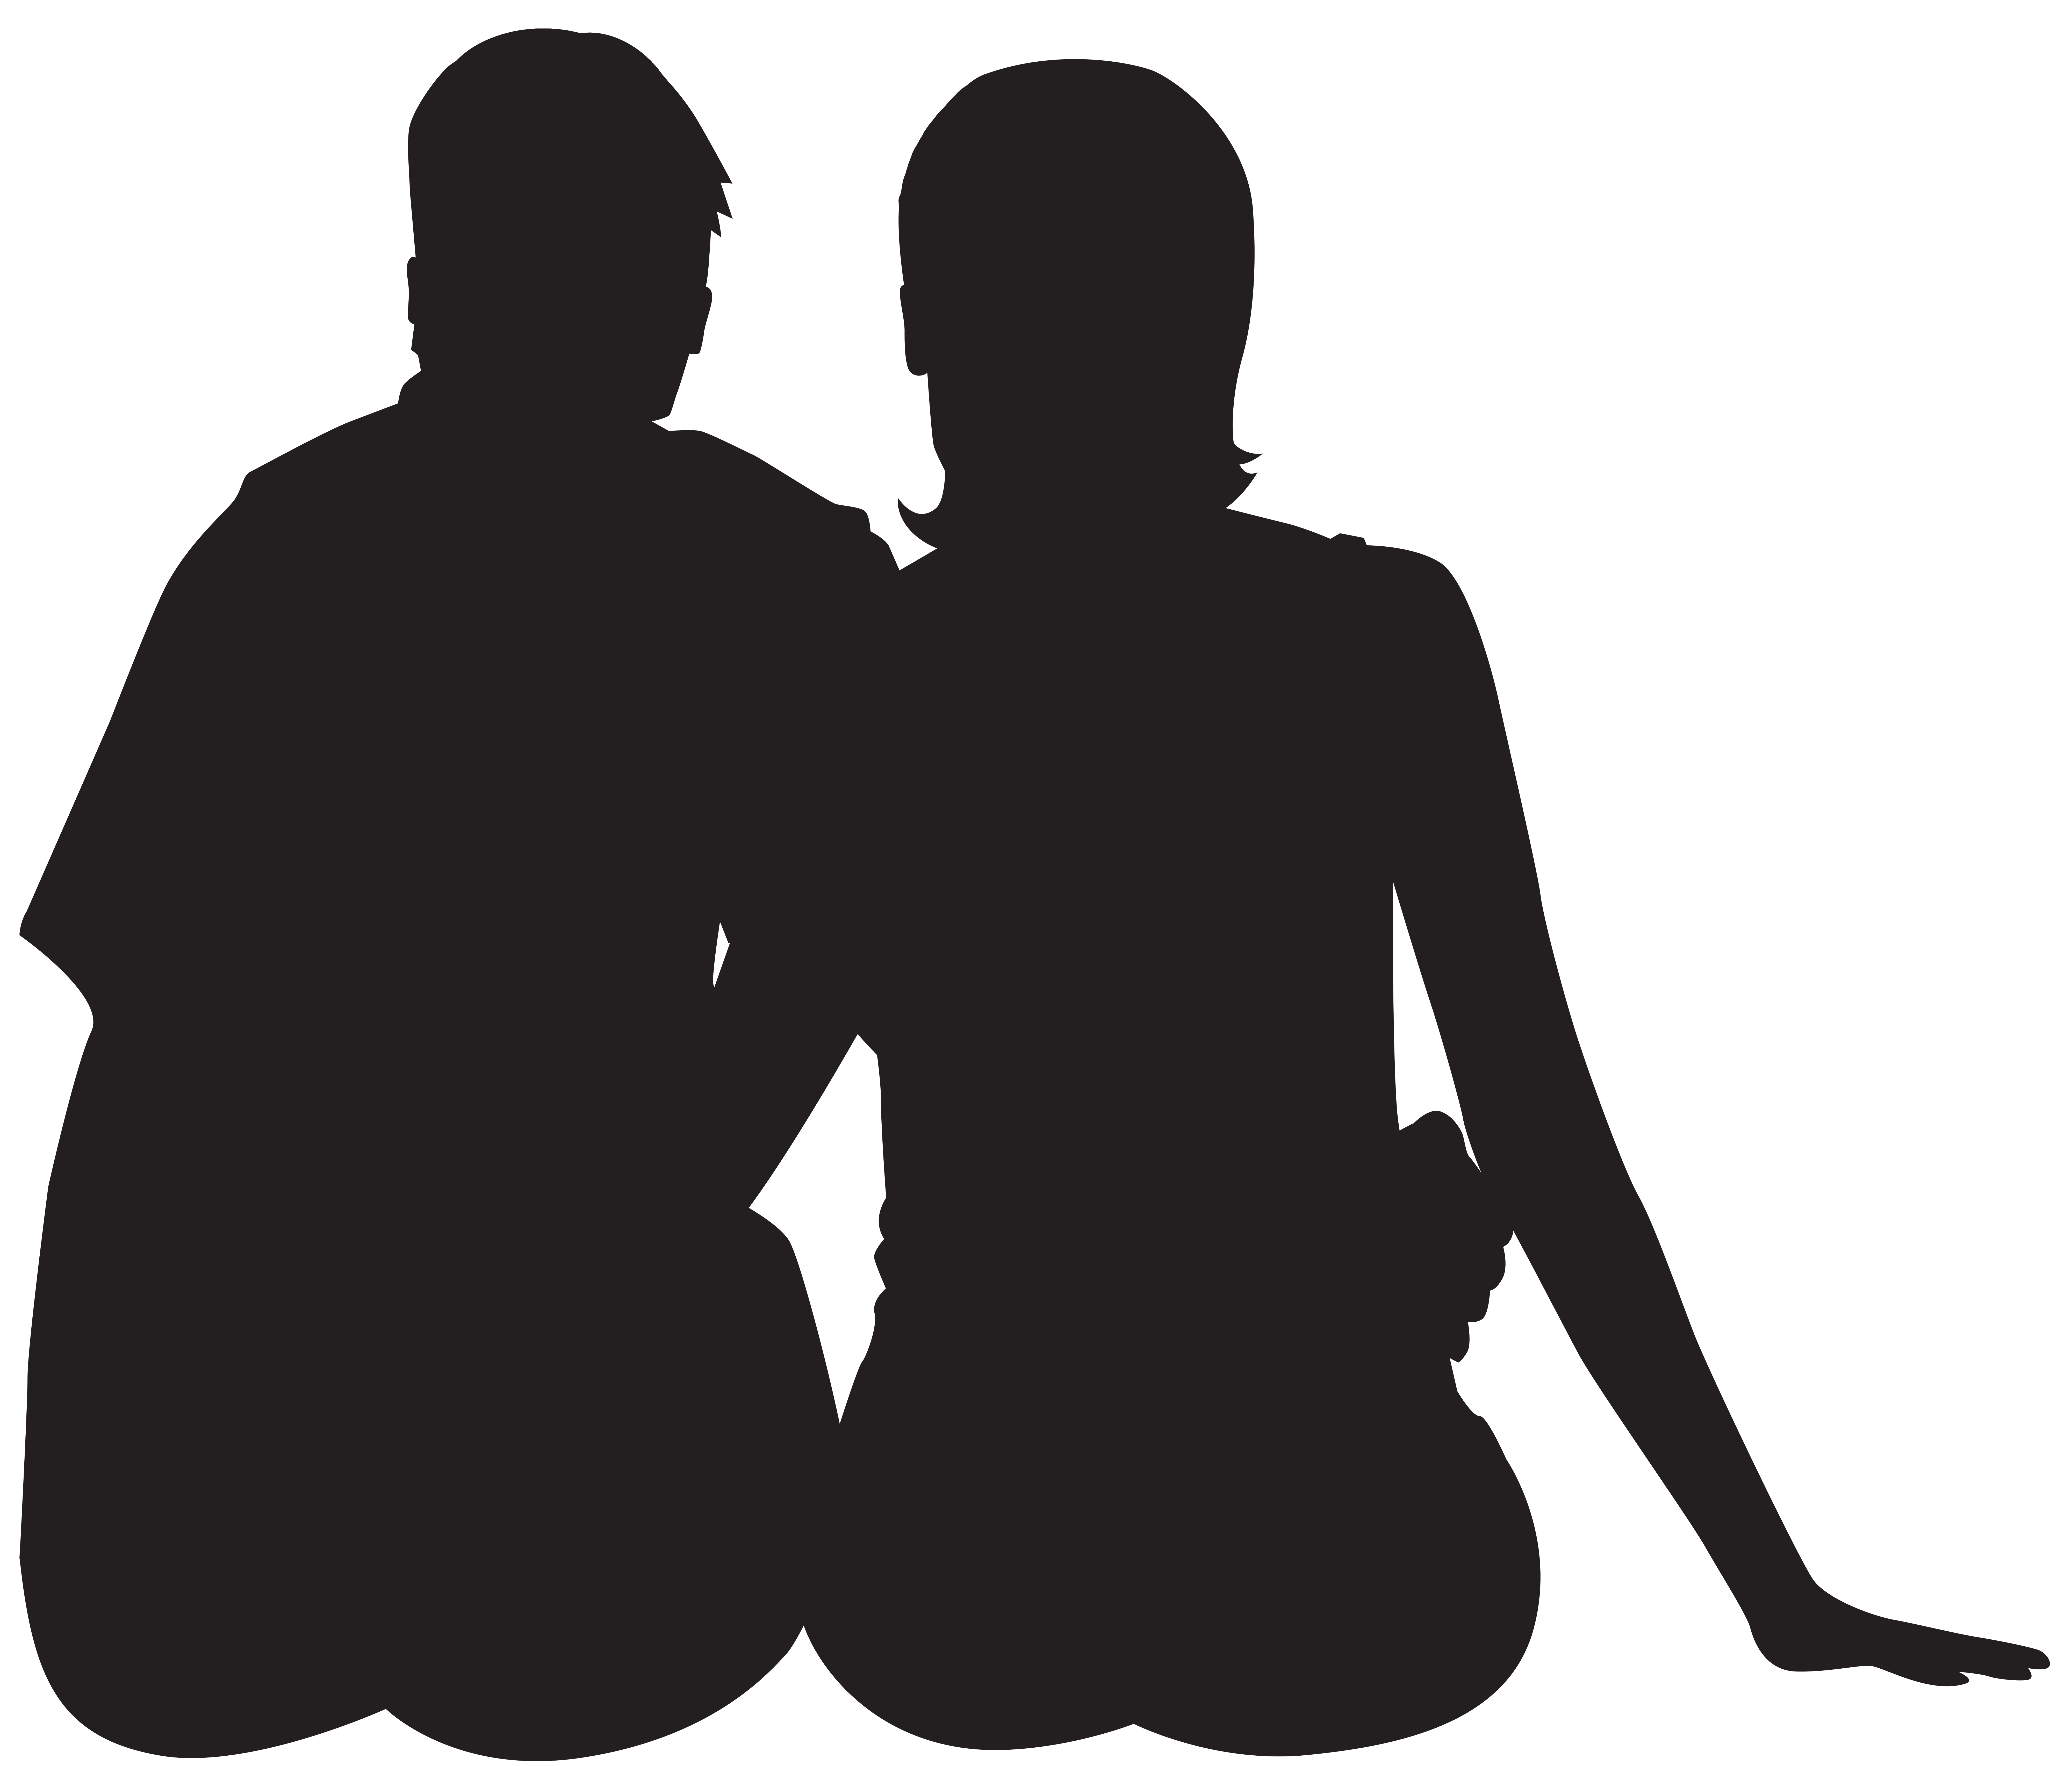 Couple clipart transparent Clip Image full PNG View